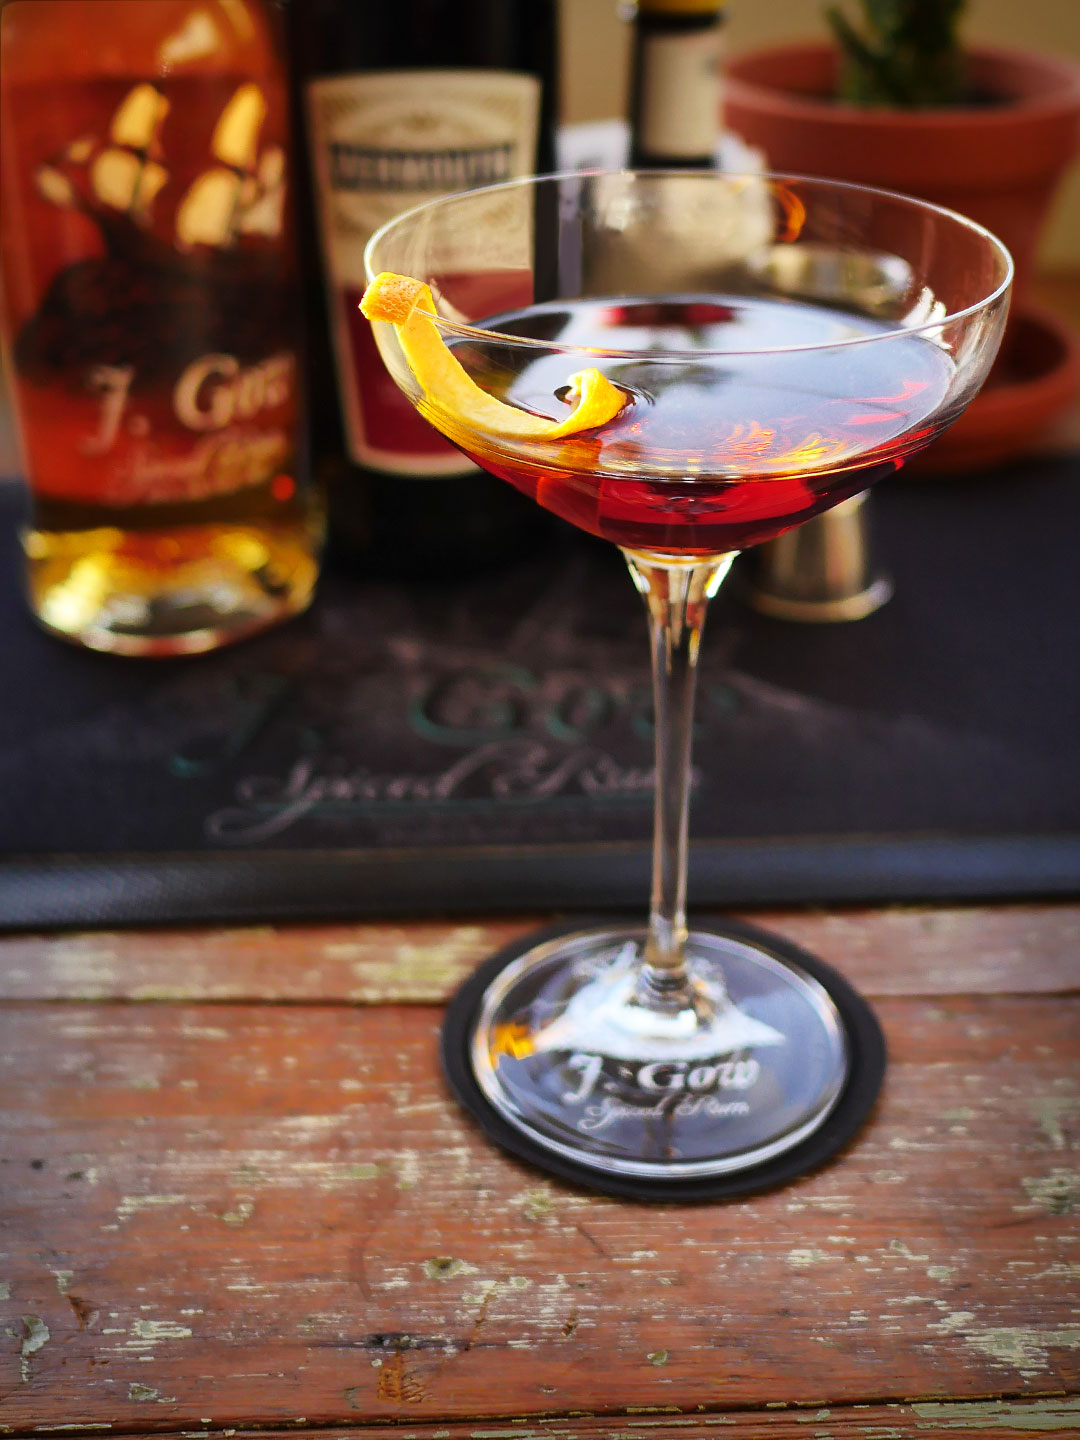 New Amsterdam J. Gow Manhattan cocktail